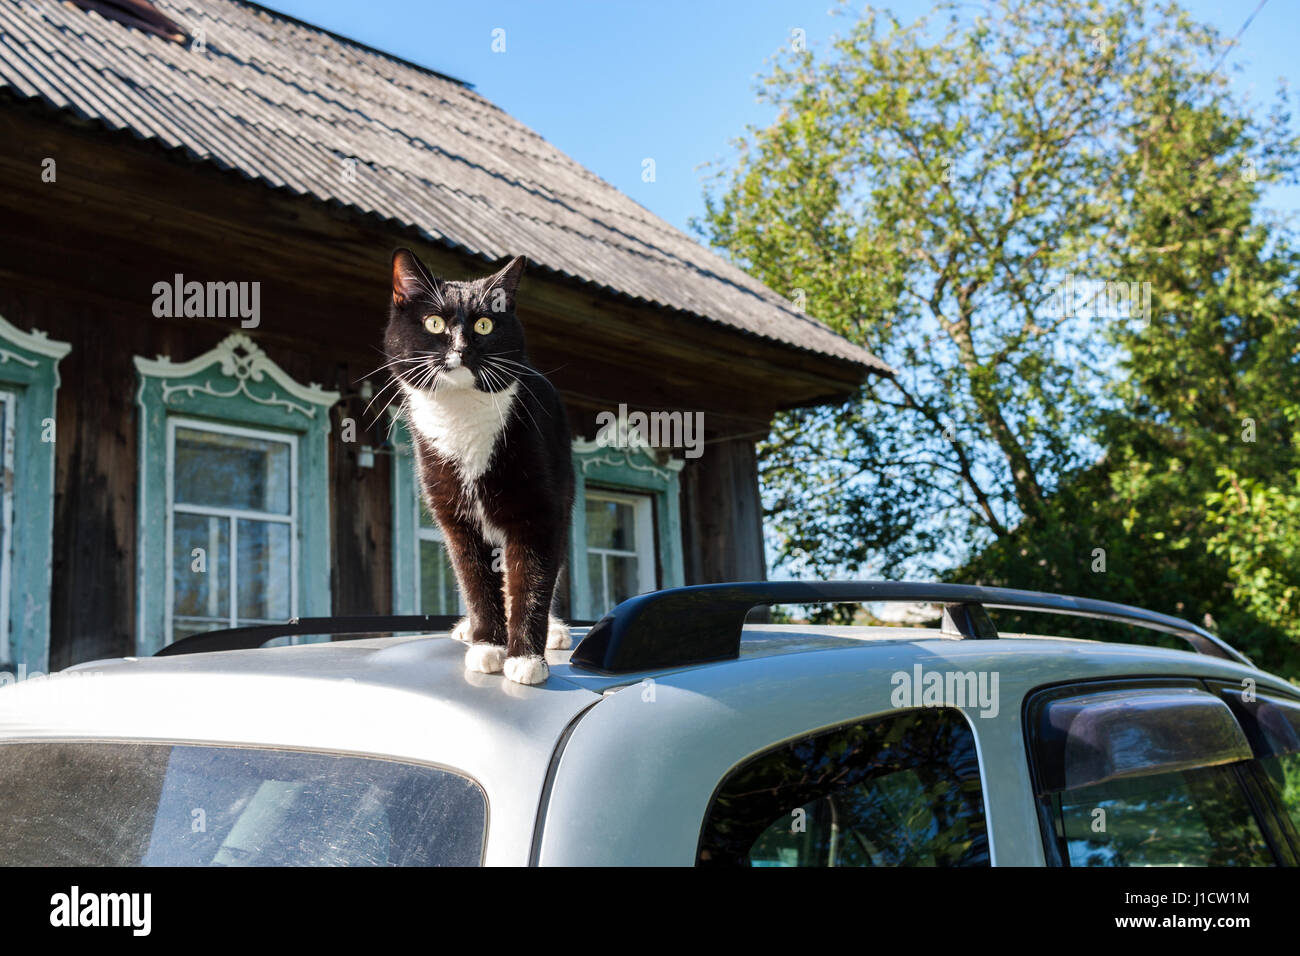 Black and white cat stands on roof of car near village house in summer. - Stock Image